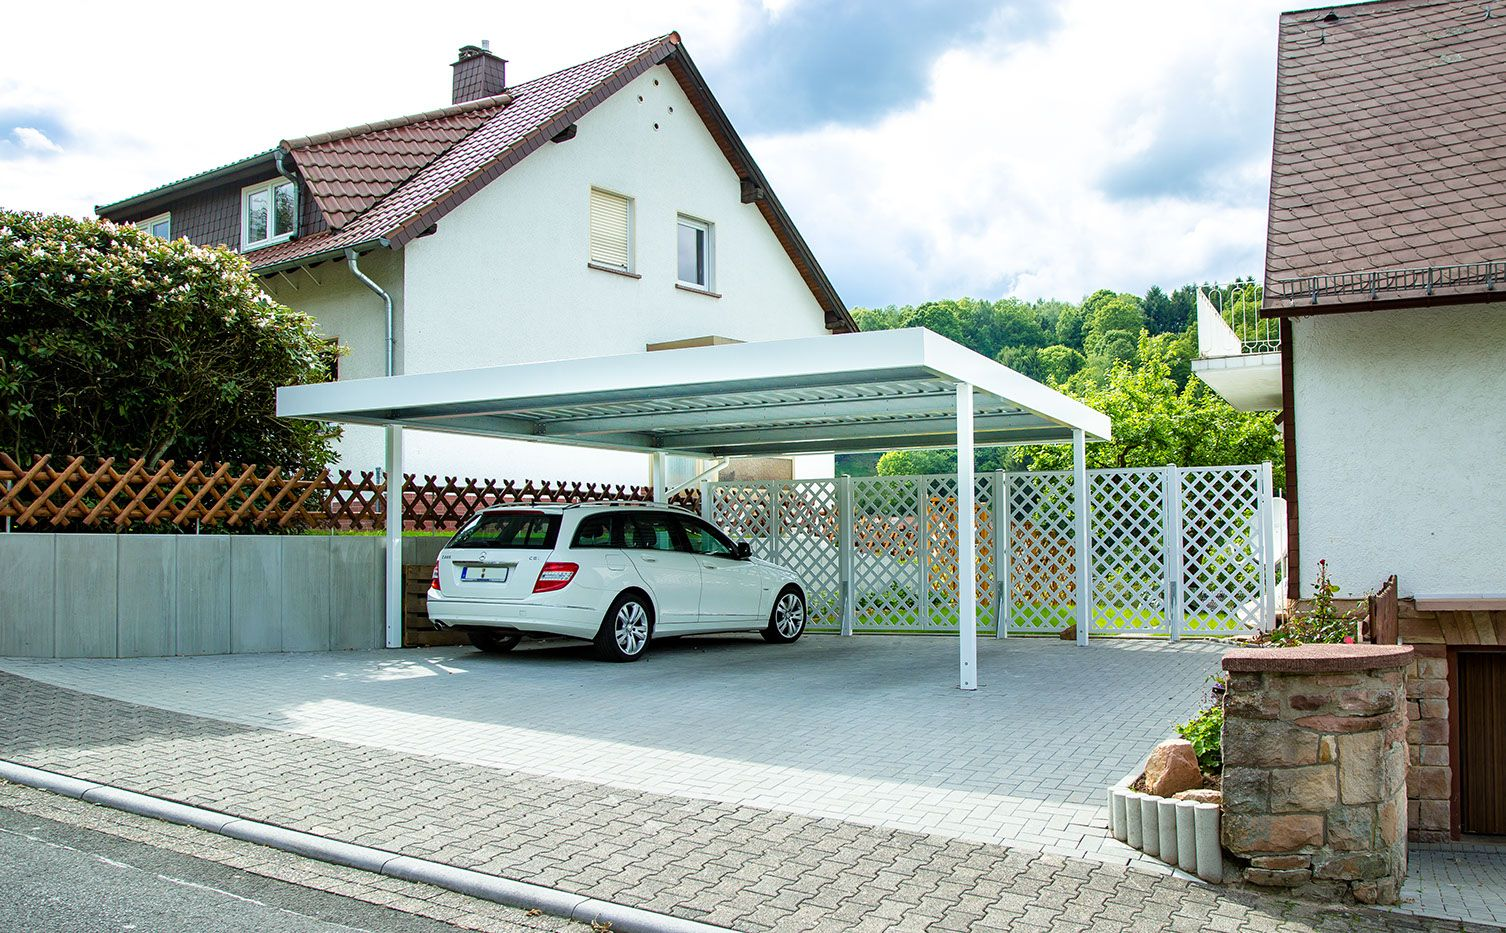 siebau carport cp 403 mit flachdach fallrohr dachrinne. Black Bedroom Furniture Sets. Home Design Ideas